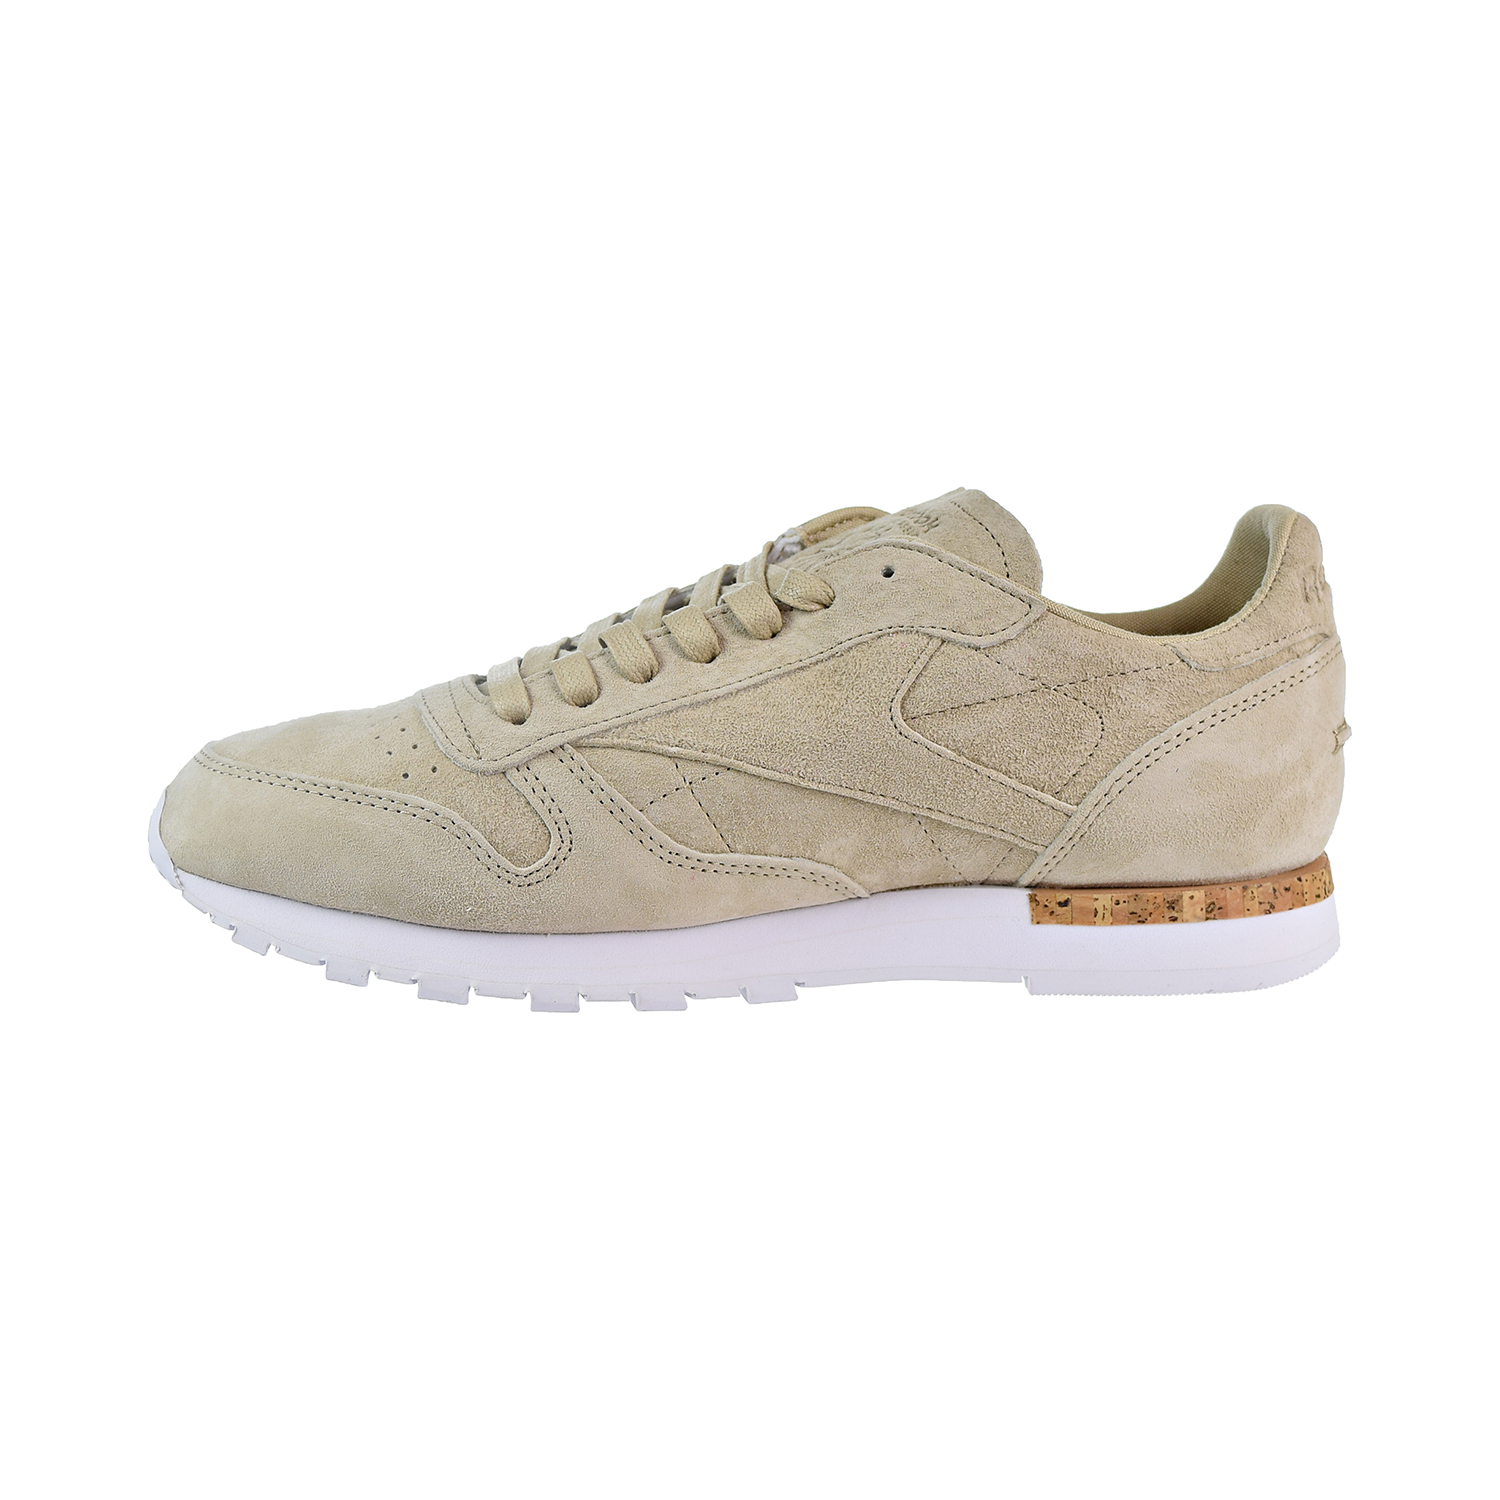 Details about Reebok Classic Leather LST Men's Shoes Oatmeal Driftwood White BD1900